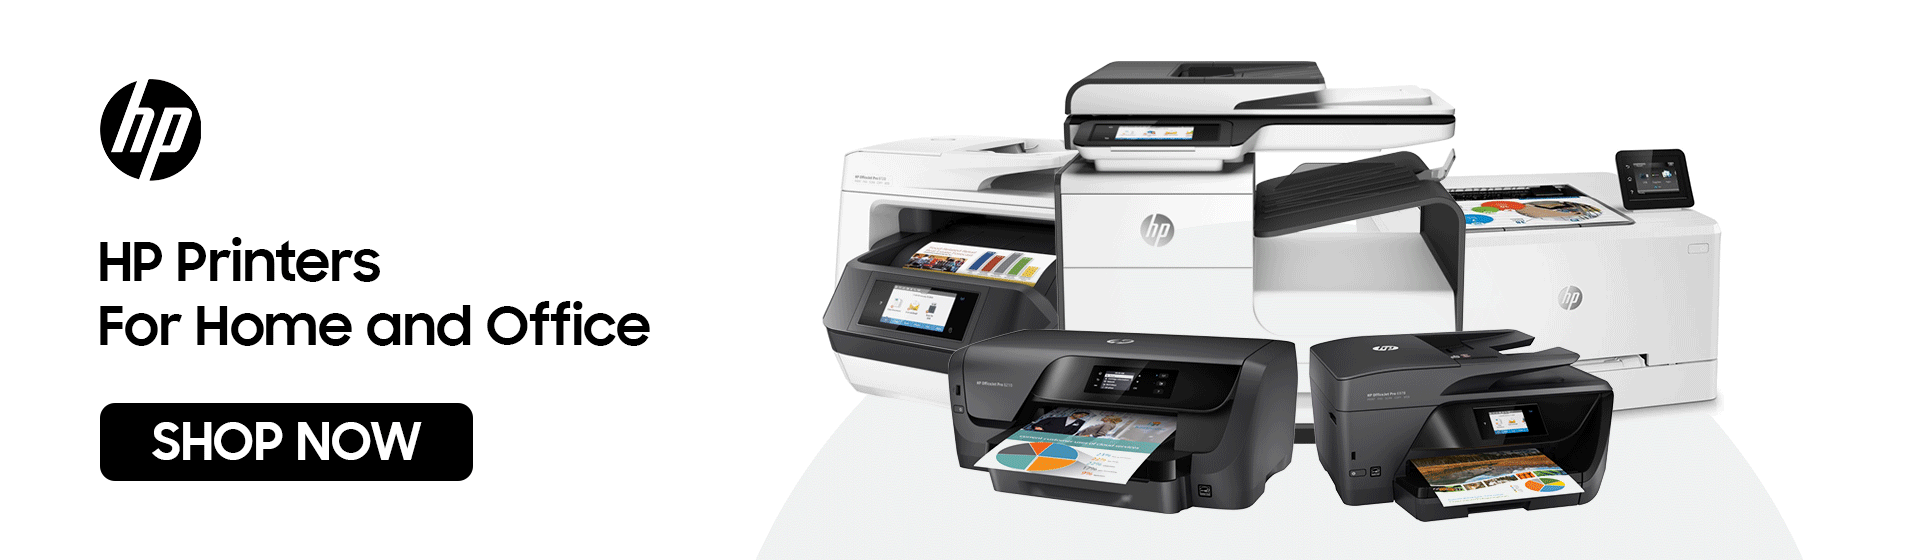 HP Printers | Home and Office